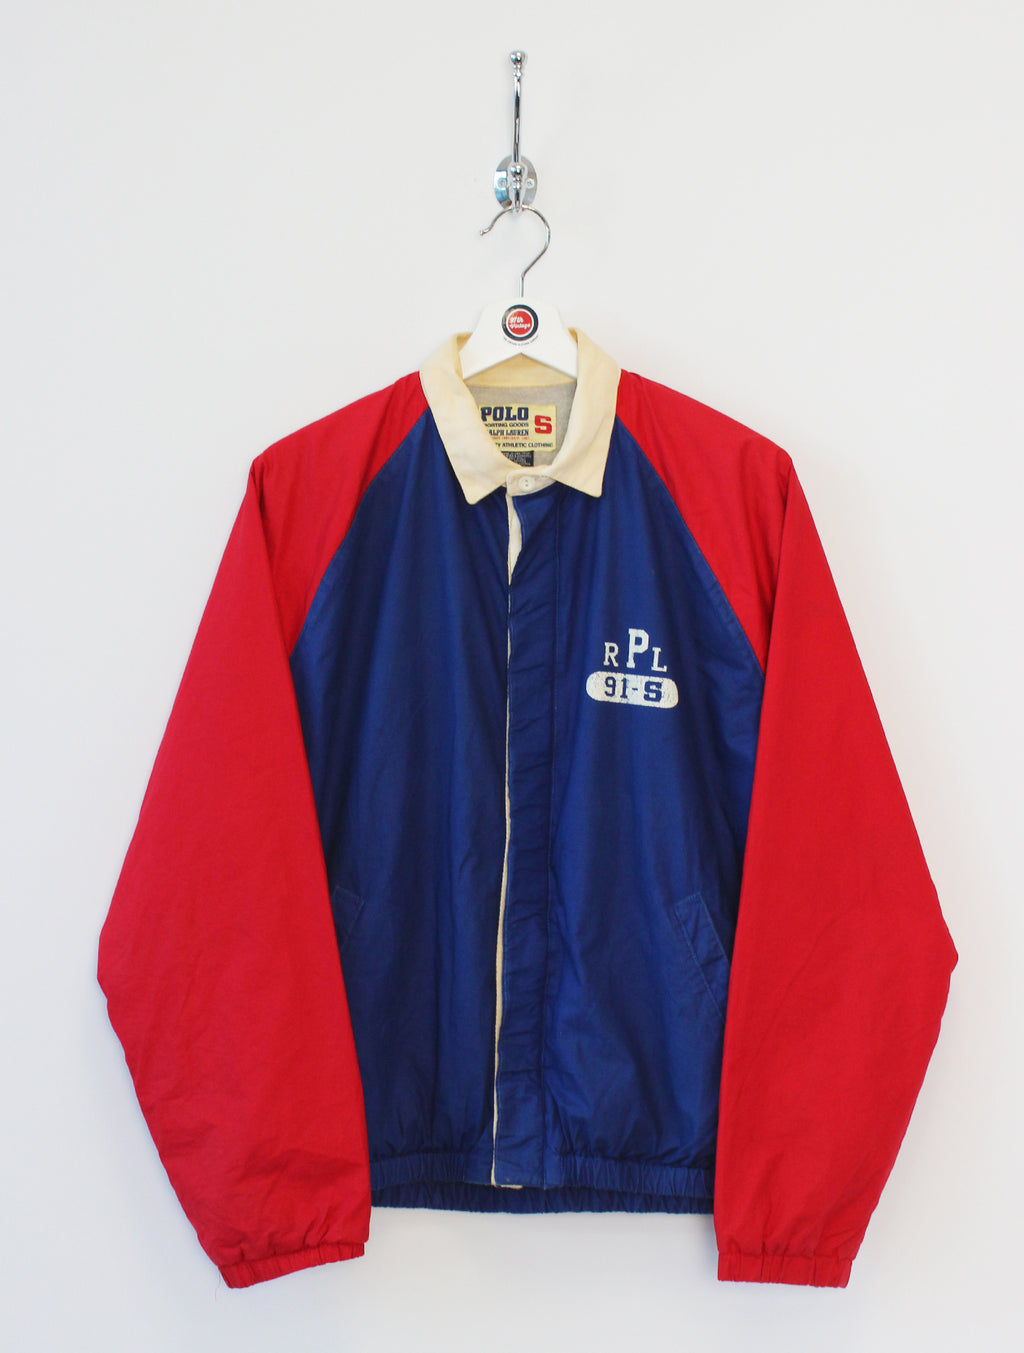 1991 Polo Ralph Lauren Jacket (S)